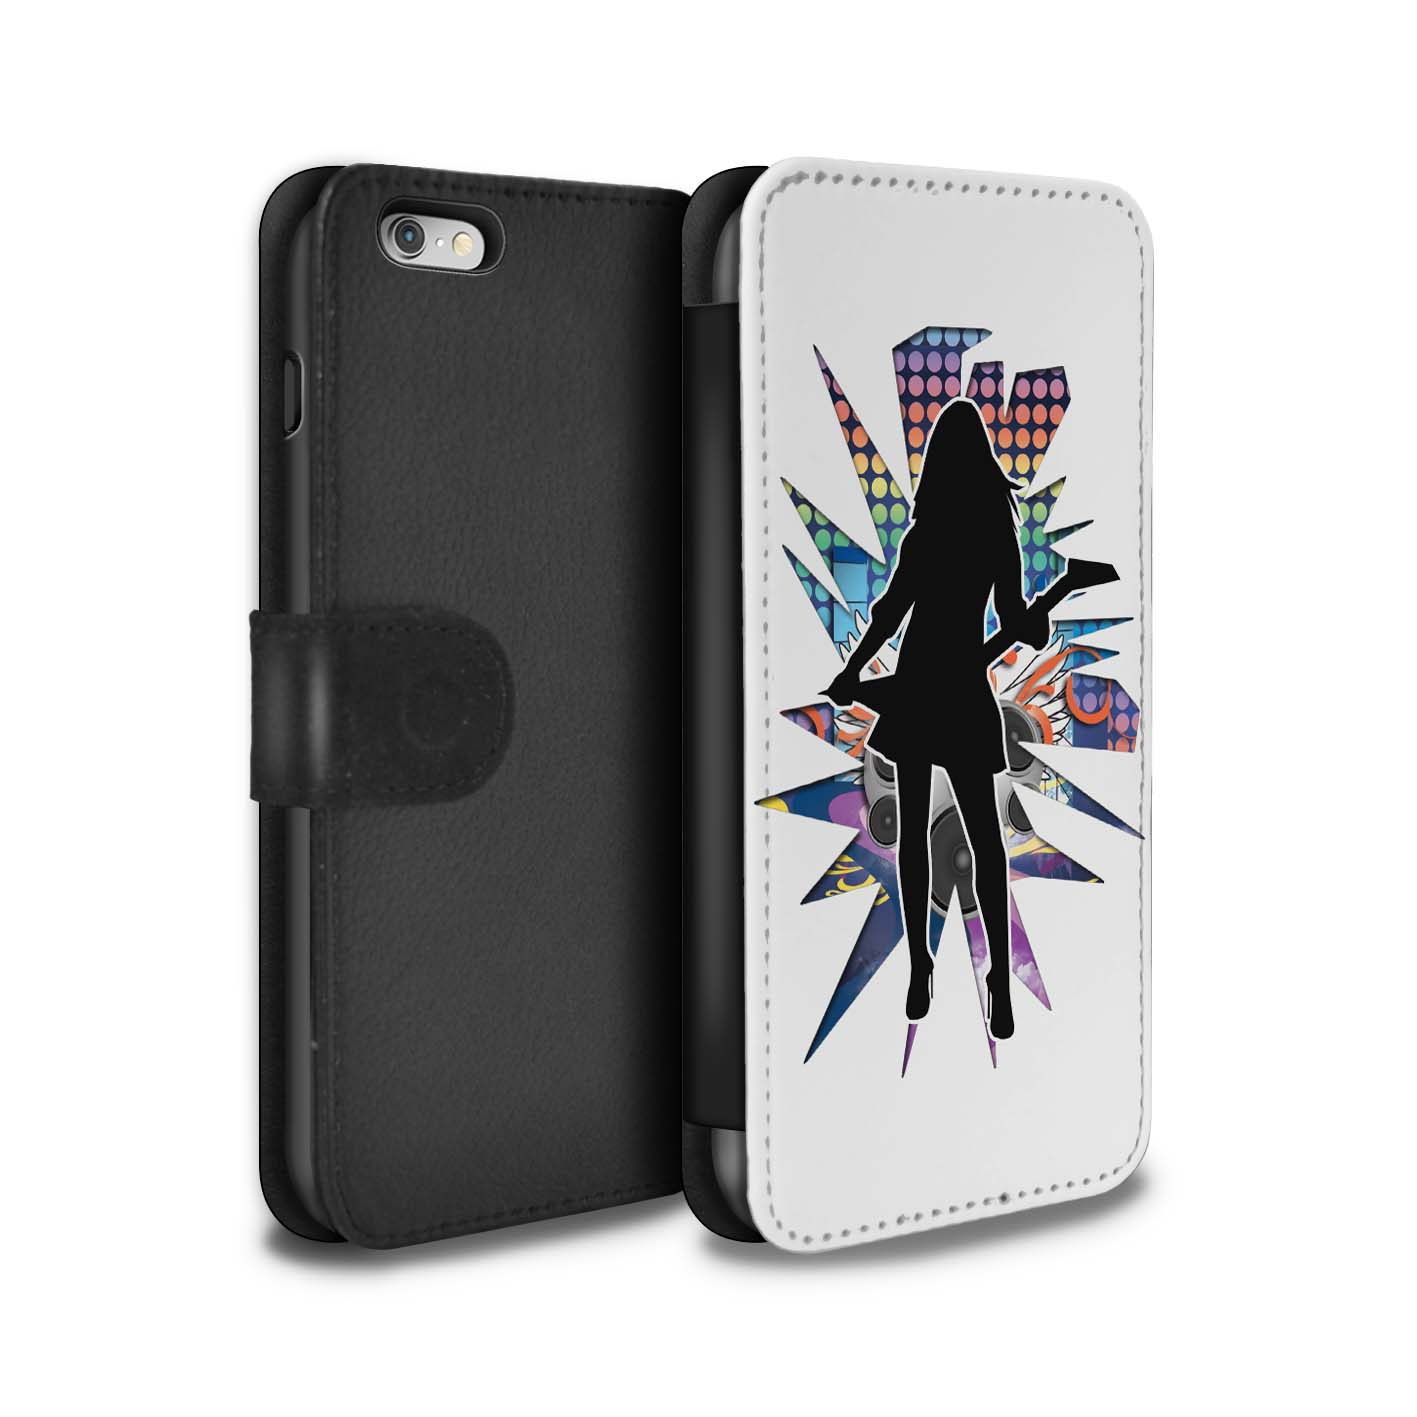 STUFF4-Coque-Etui-Case-Cuir-PU-pour-Apple-iPhone-6S-Plus-Rock-Star-Pose